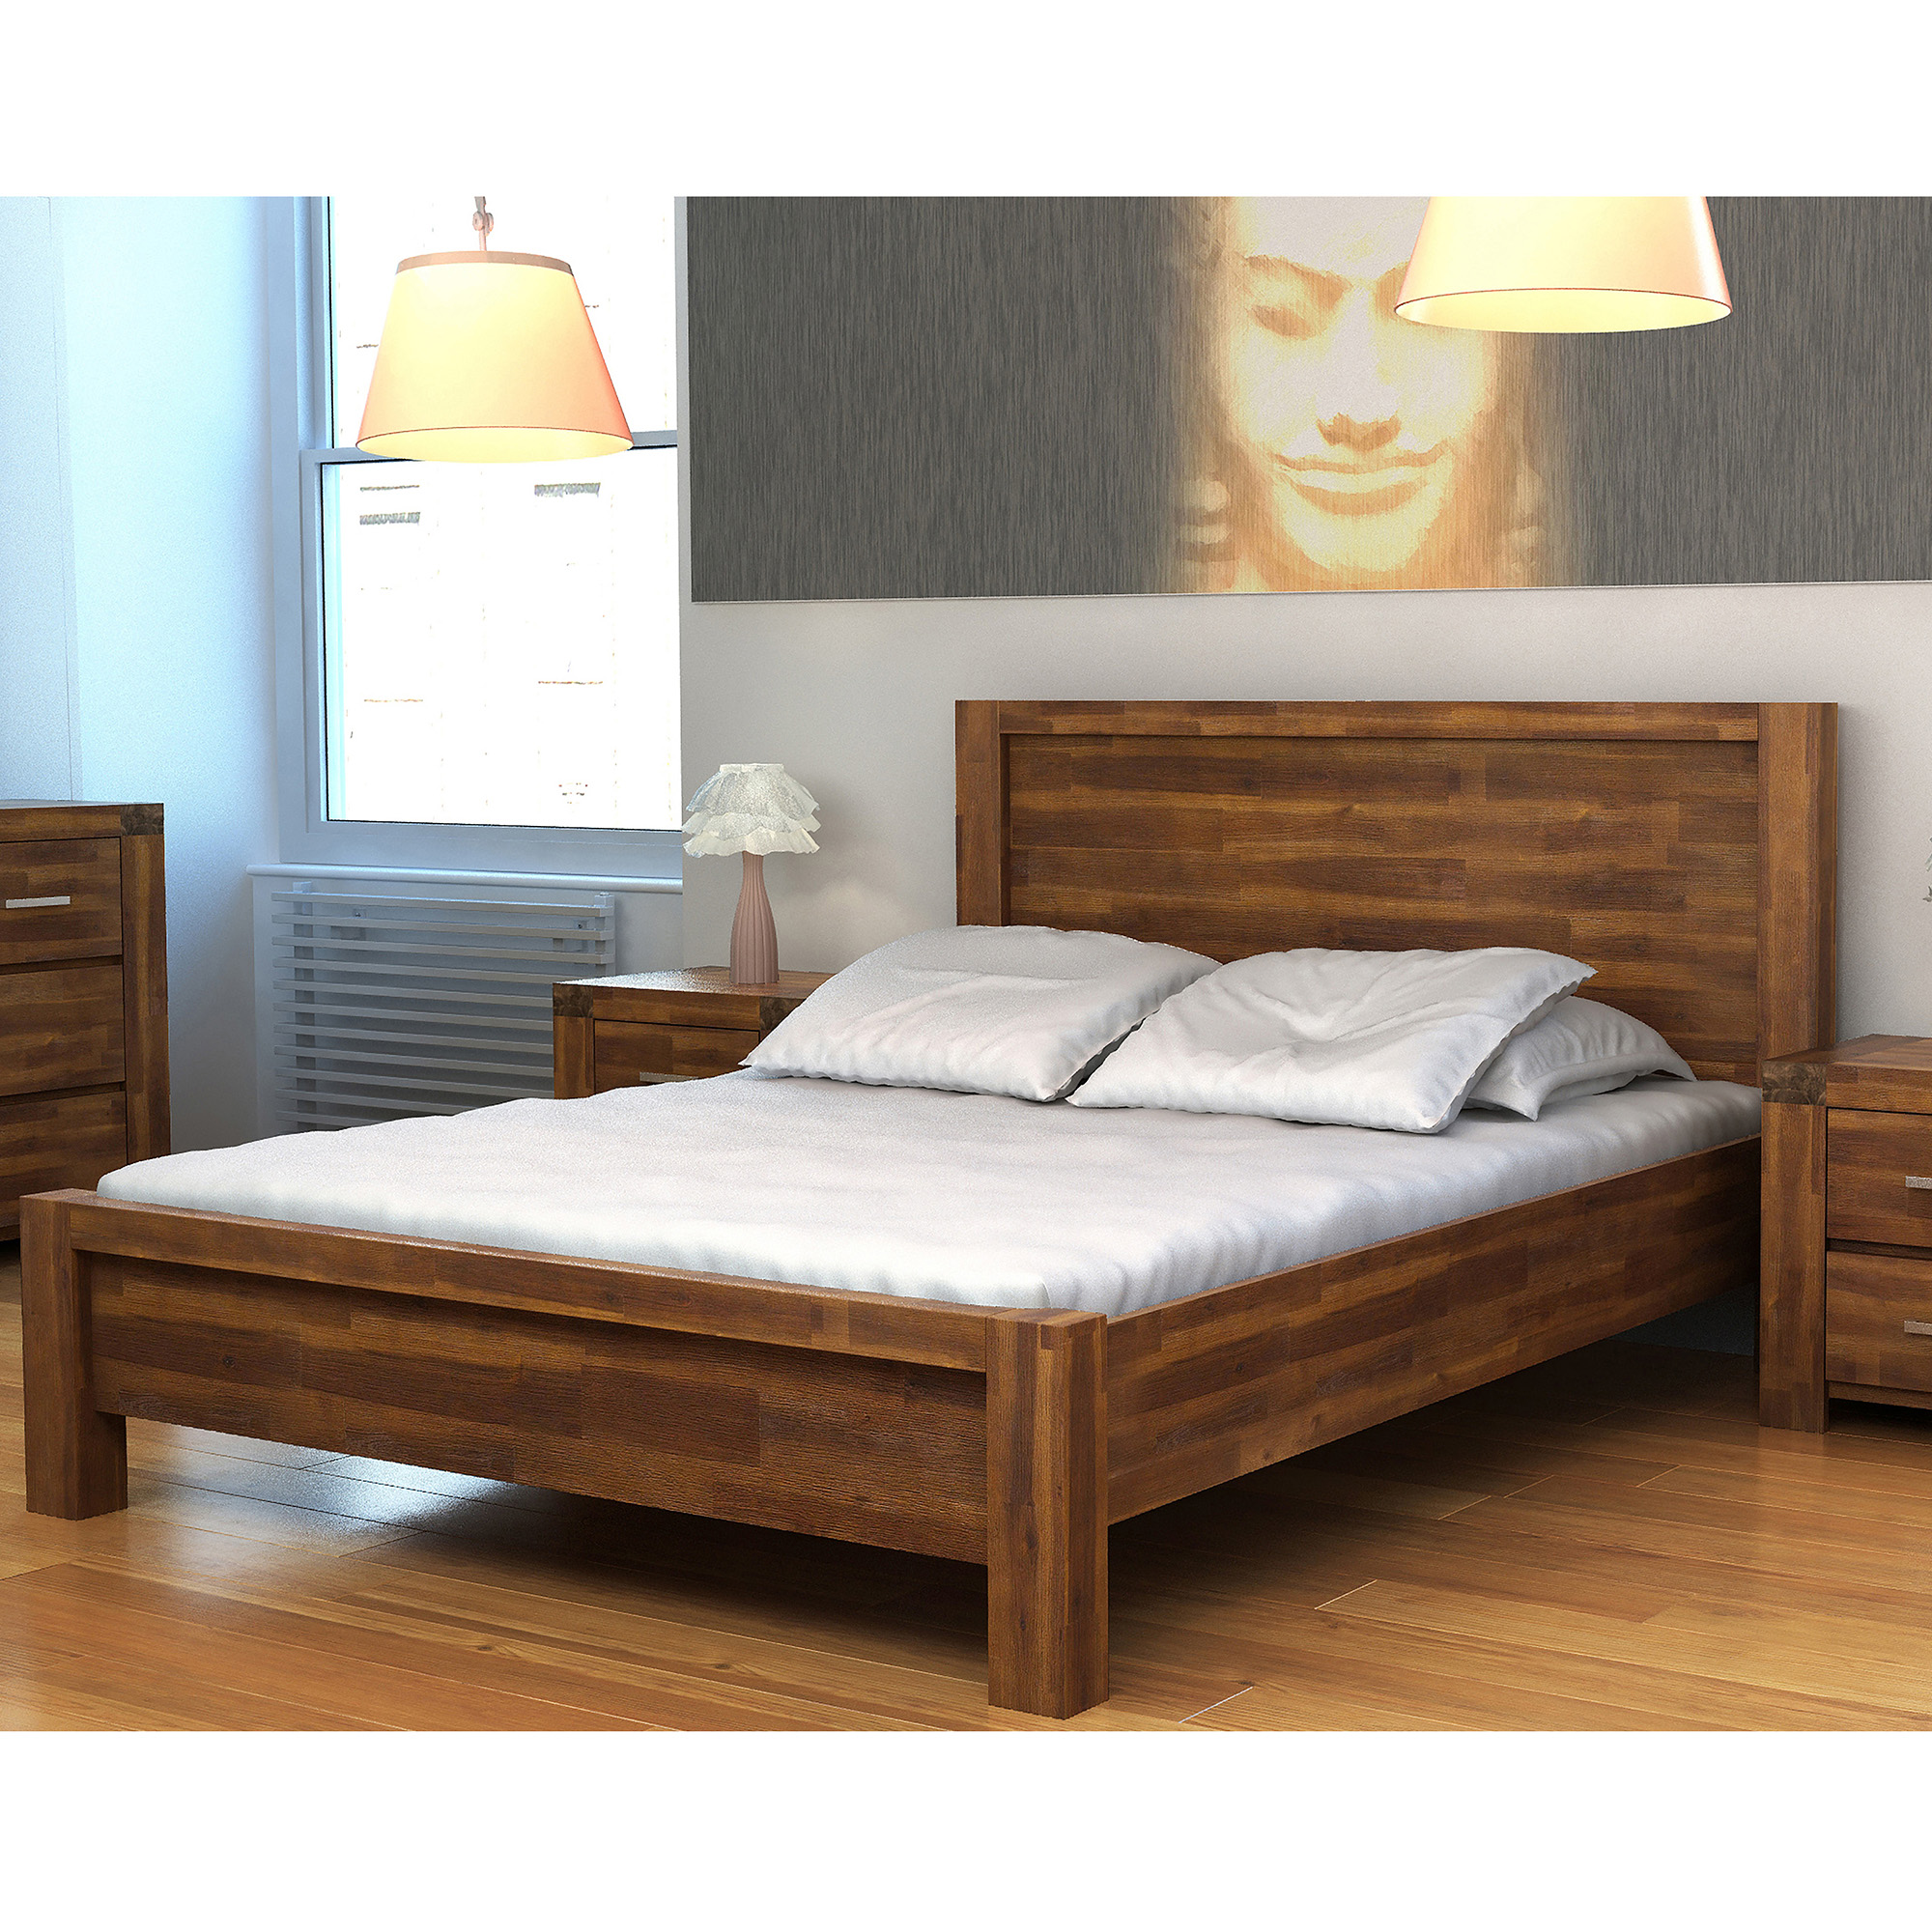 High Quality Wooden Bed By Inspire